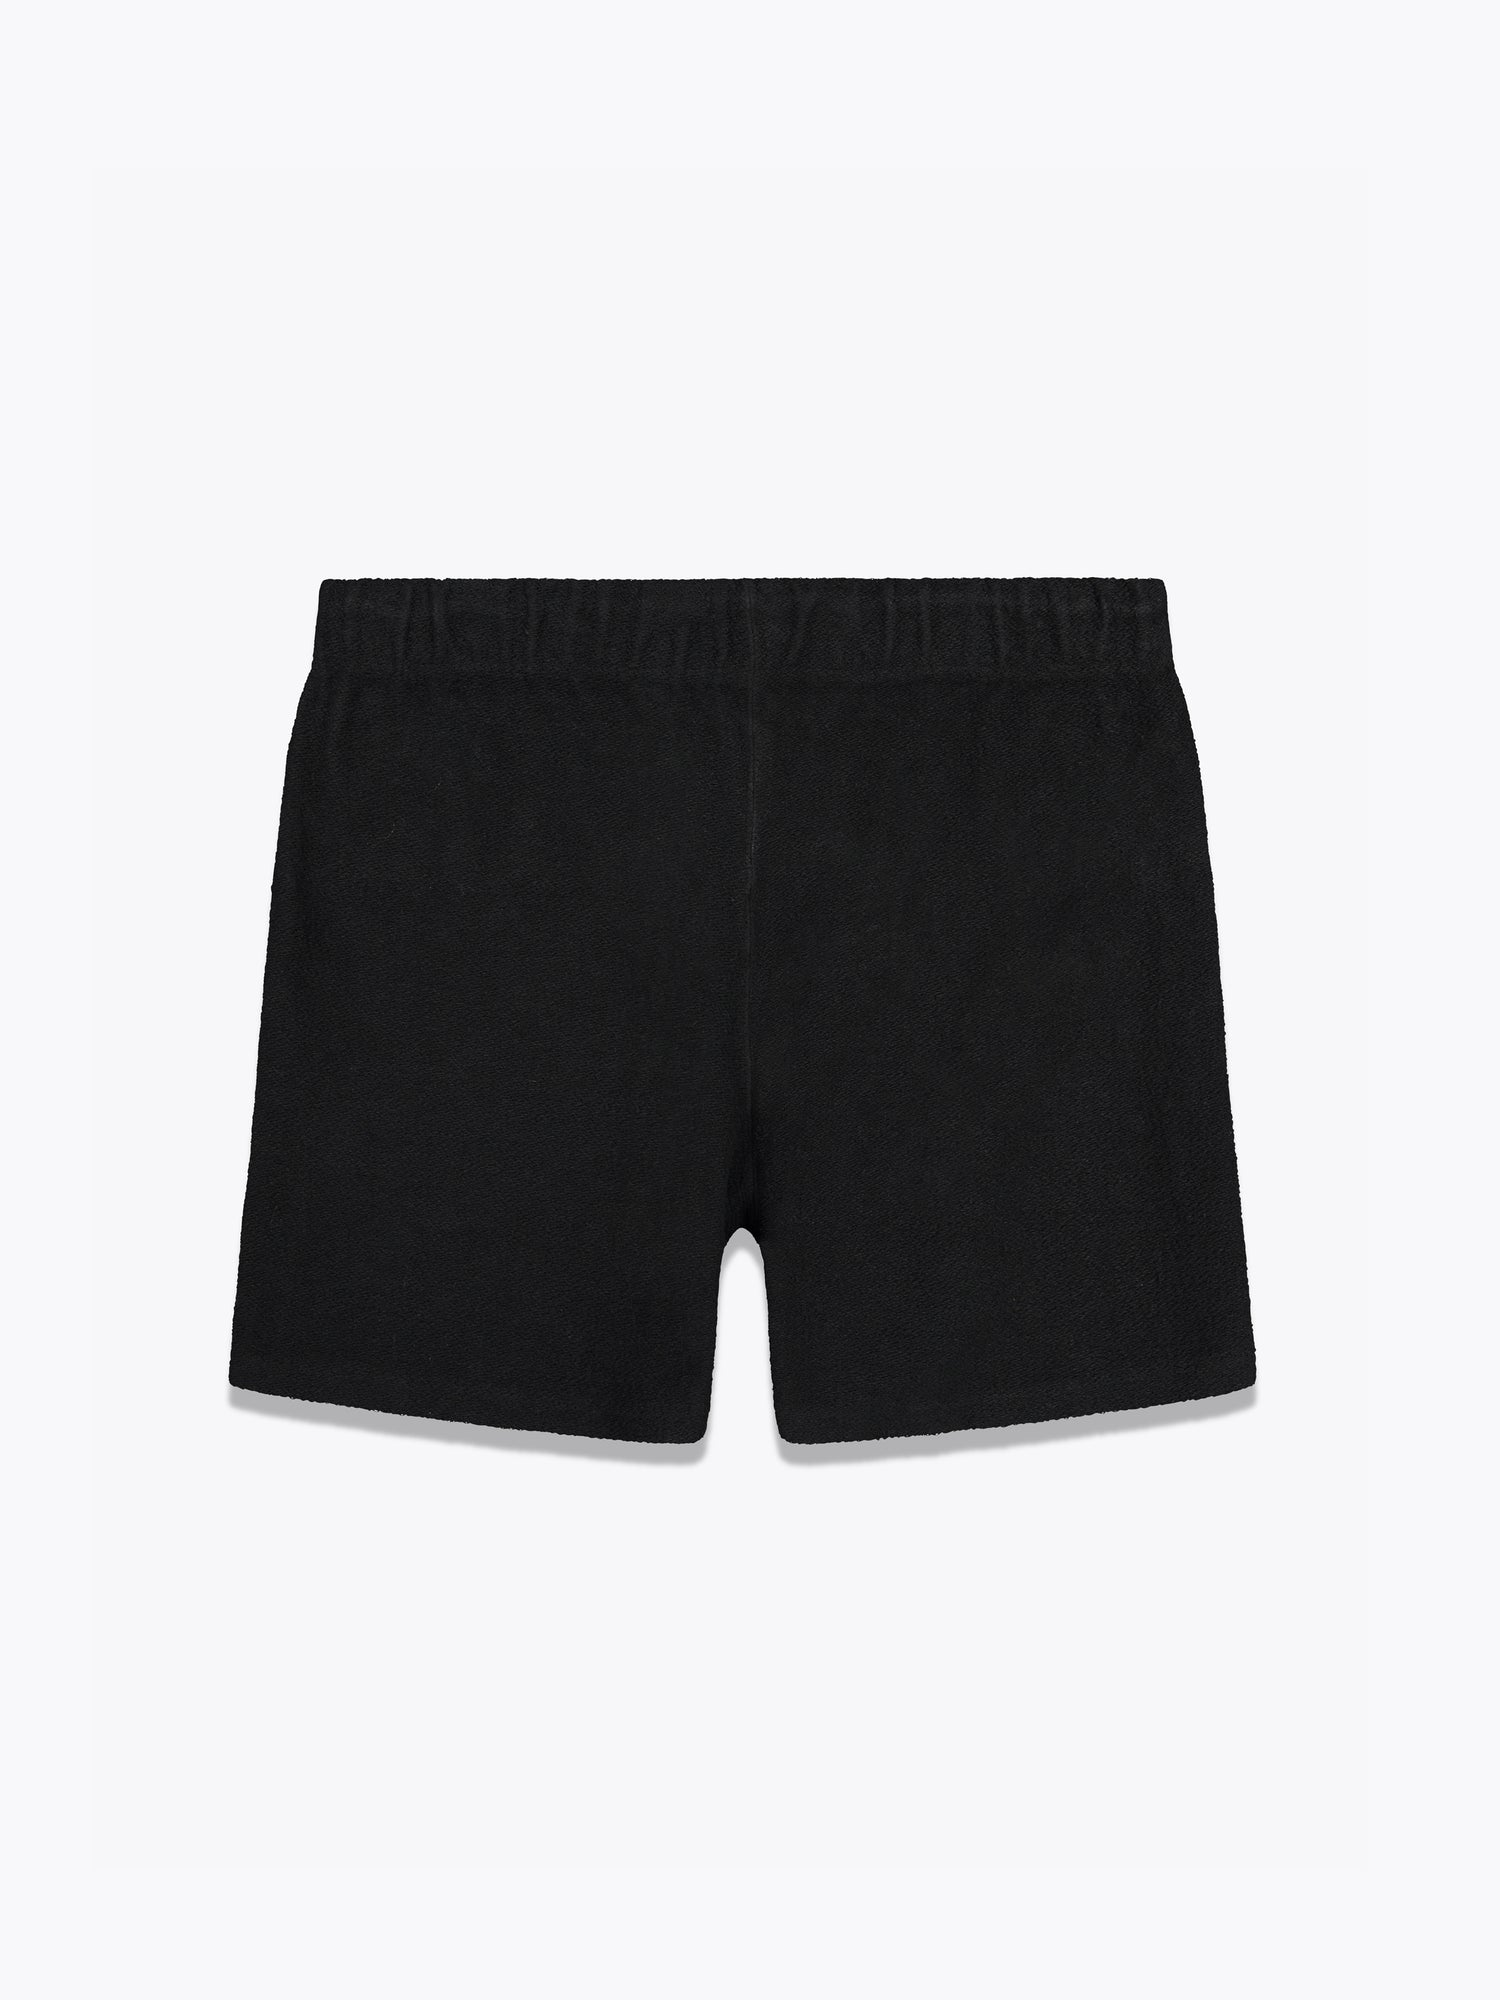 Camp Fit Sweatshorts - Black (Pre-order)